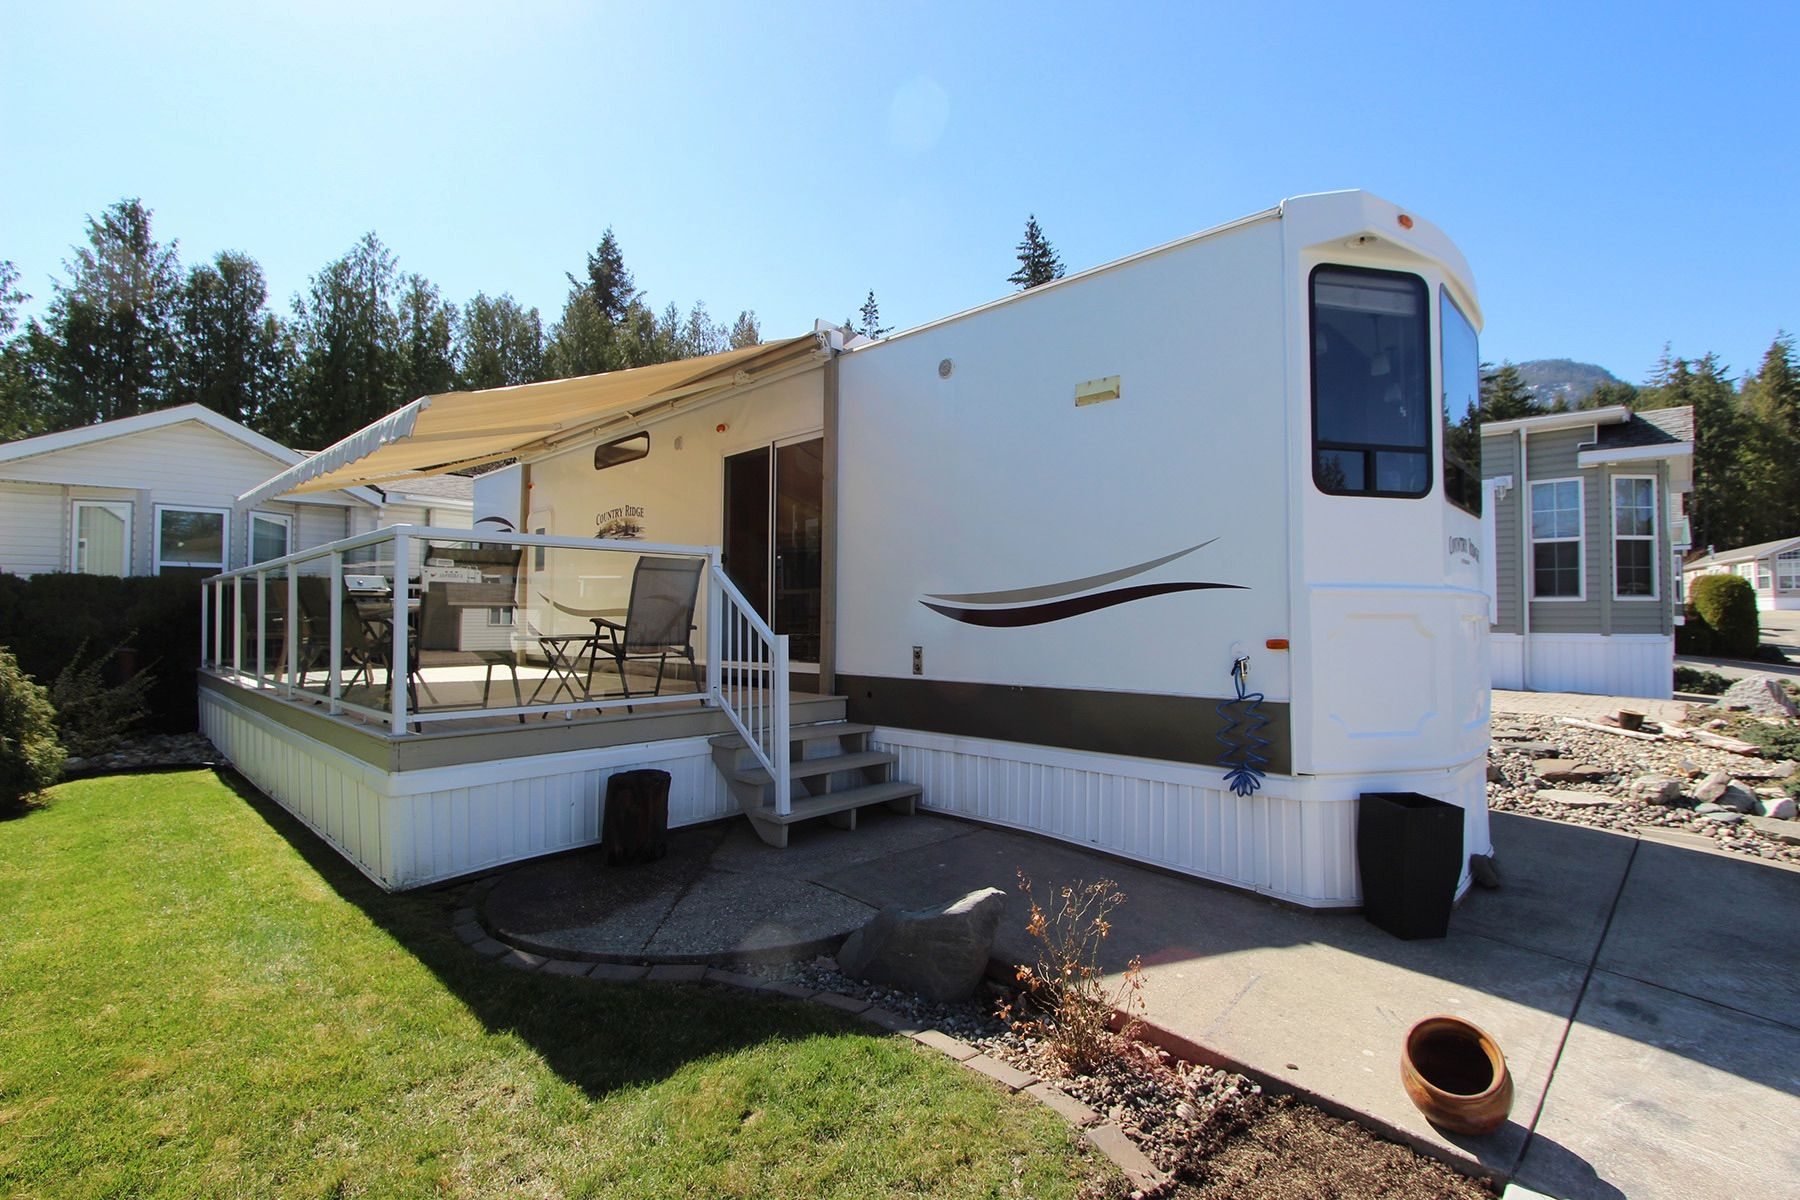 Main Photo: 46 667 Waverly Park Frontage Road in : Sorrento Recreational for sale (South Shuswap)  : MLS®# 10228217